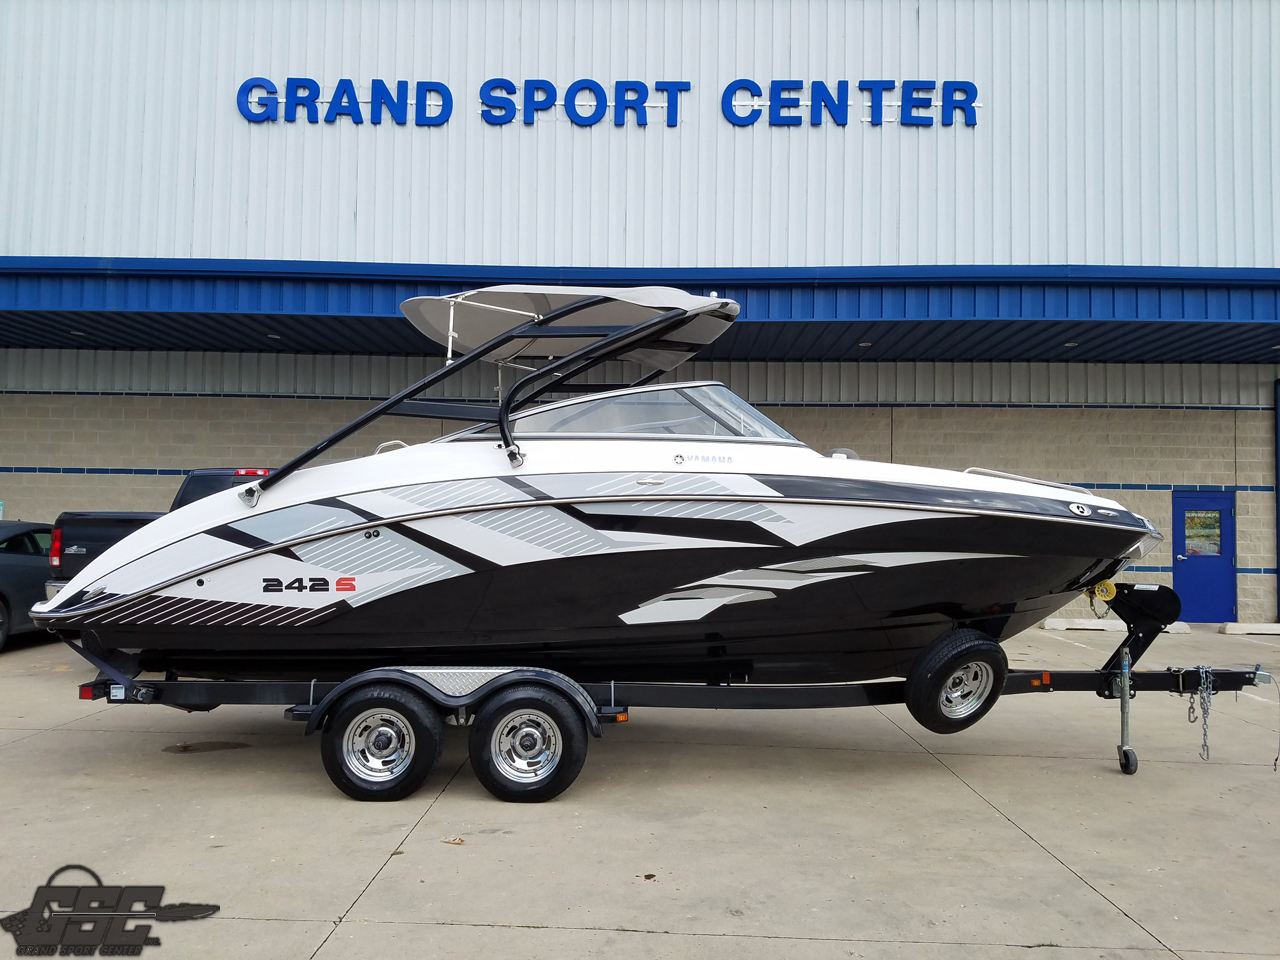 2013 Yamaha 242 Limited S Jetboat - SOLD in 72 hrs